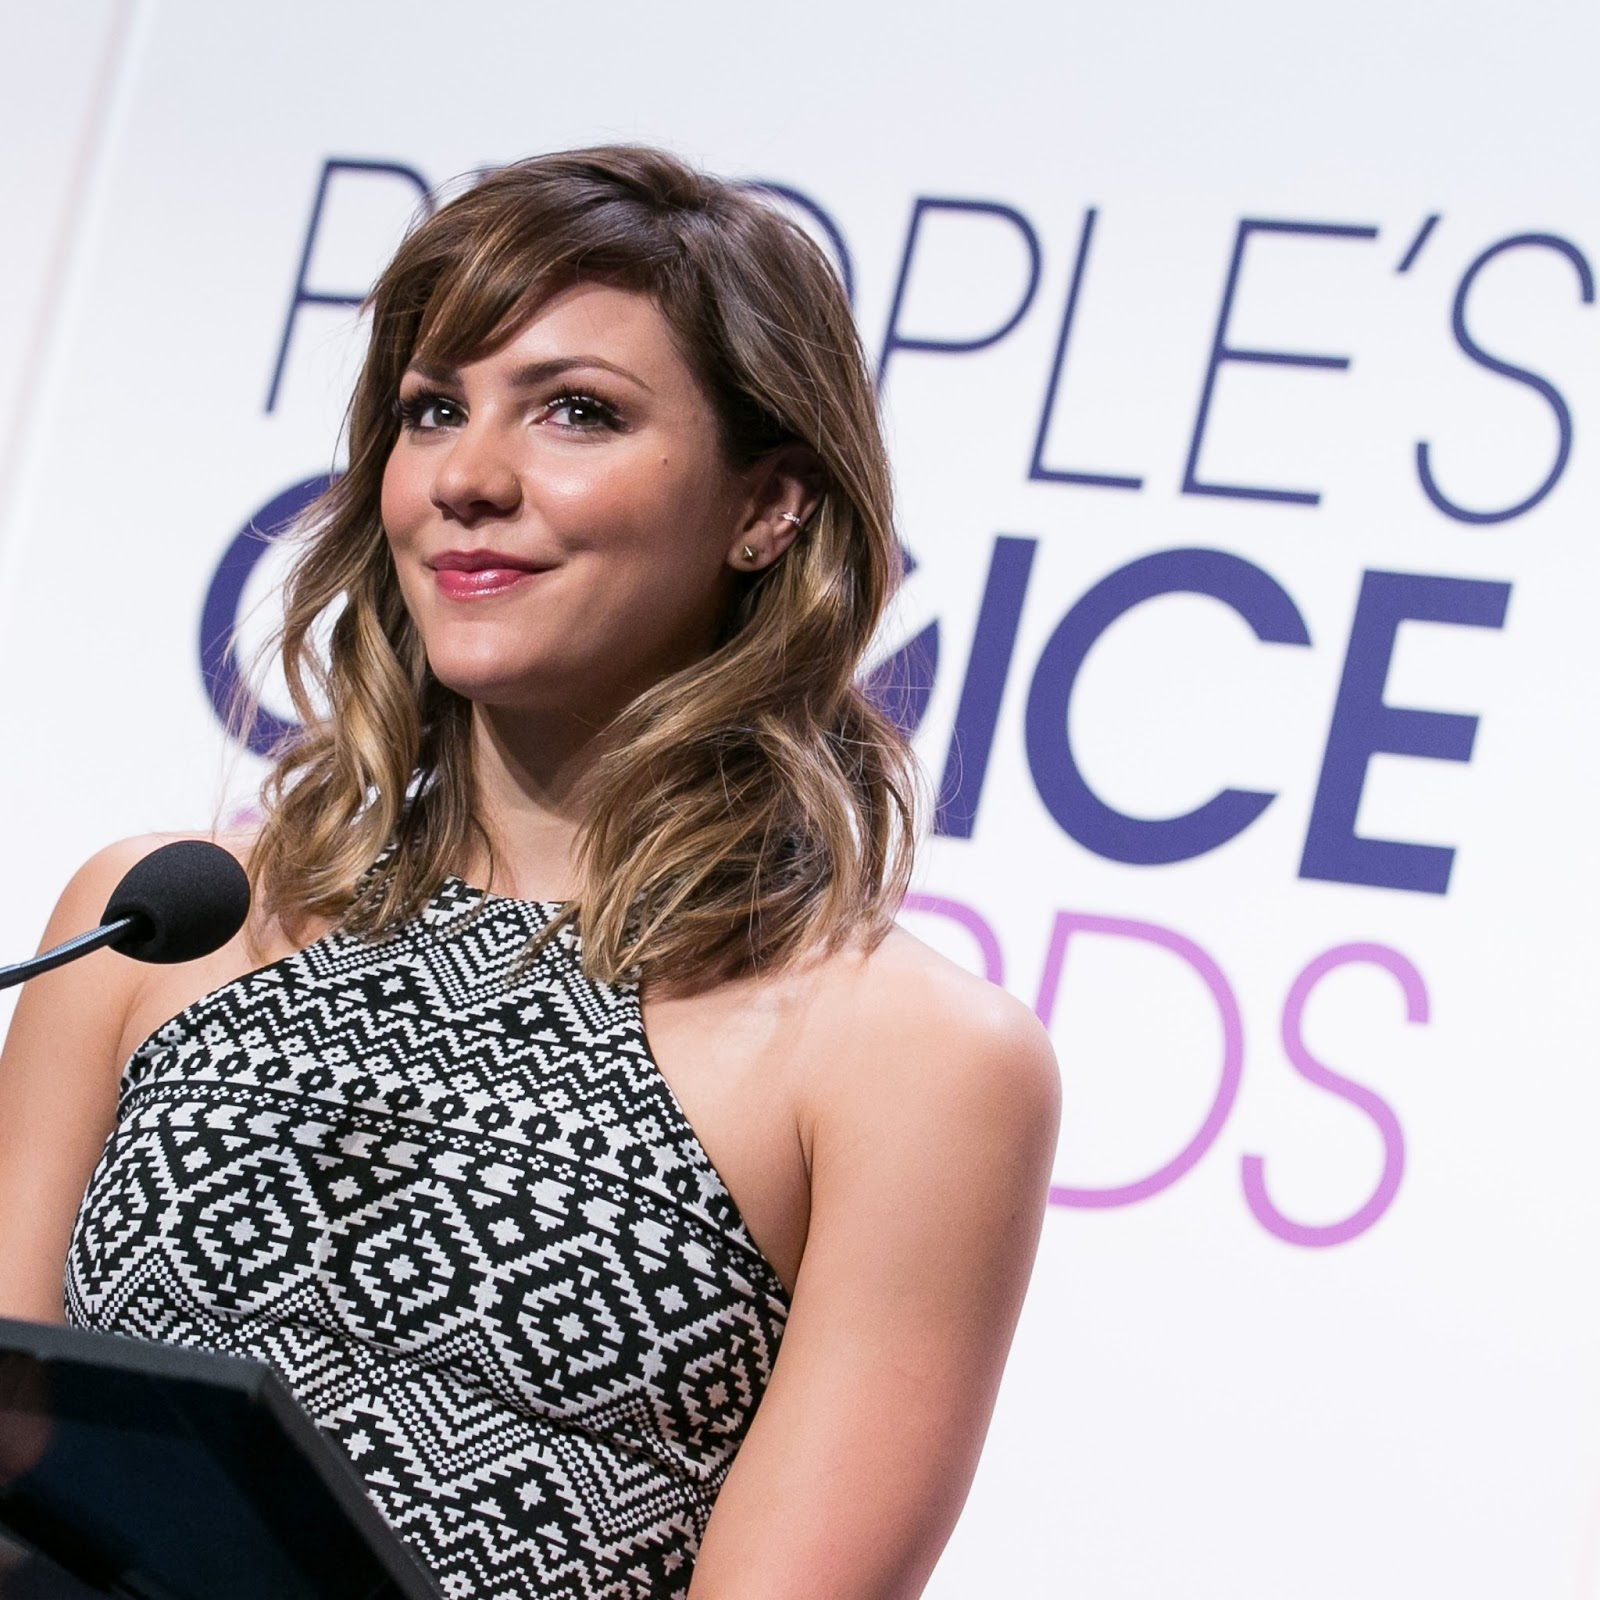 Shark Night 3D actress Katharine McPhee attends People's Choice Awards 2015 Nominations Press Conference